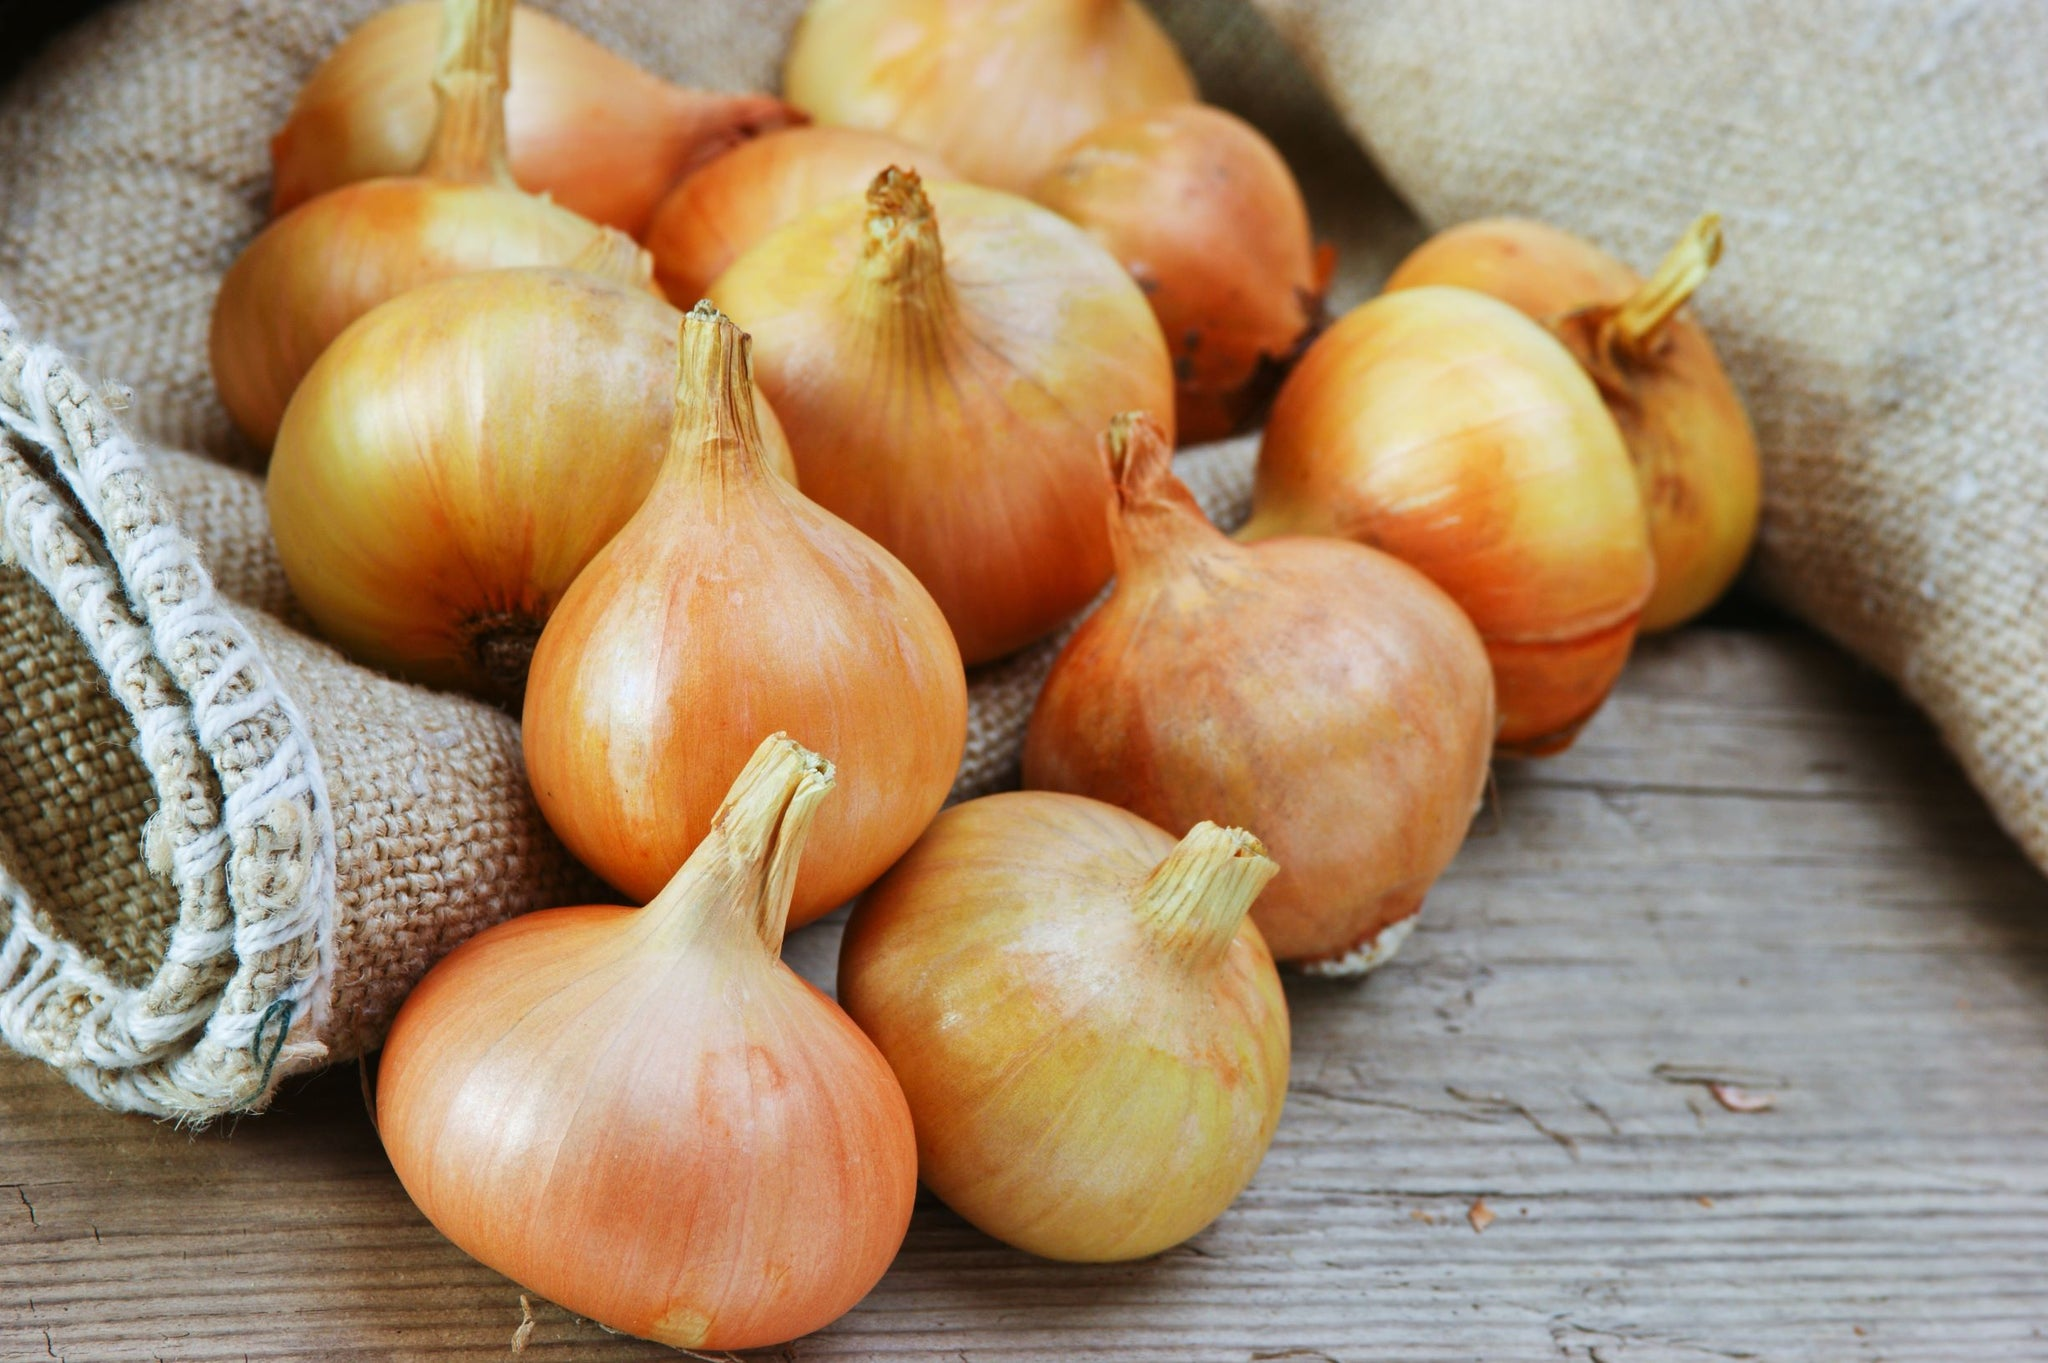 Packer Fresh Yellow Jumbo Onion - 5 Pack [$0.60/lb]